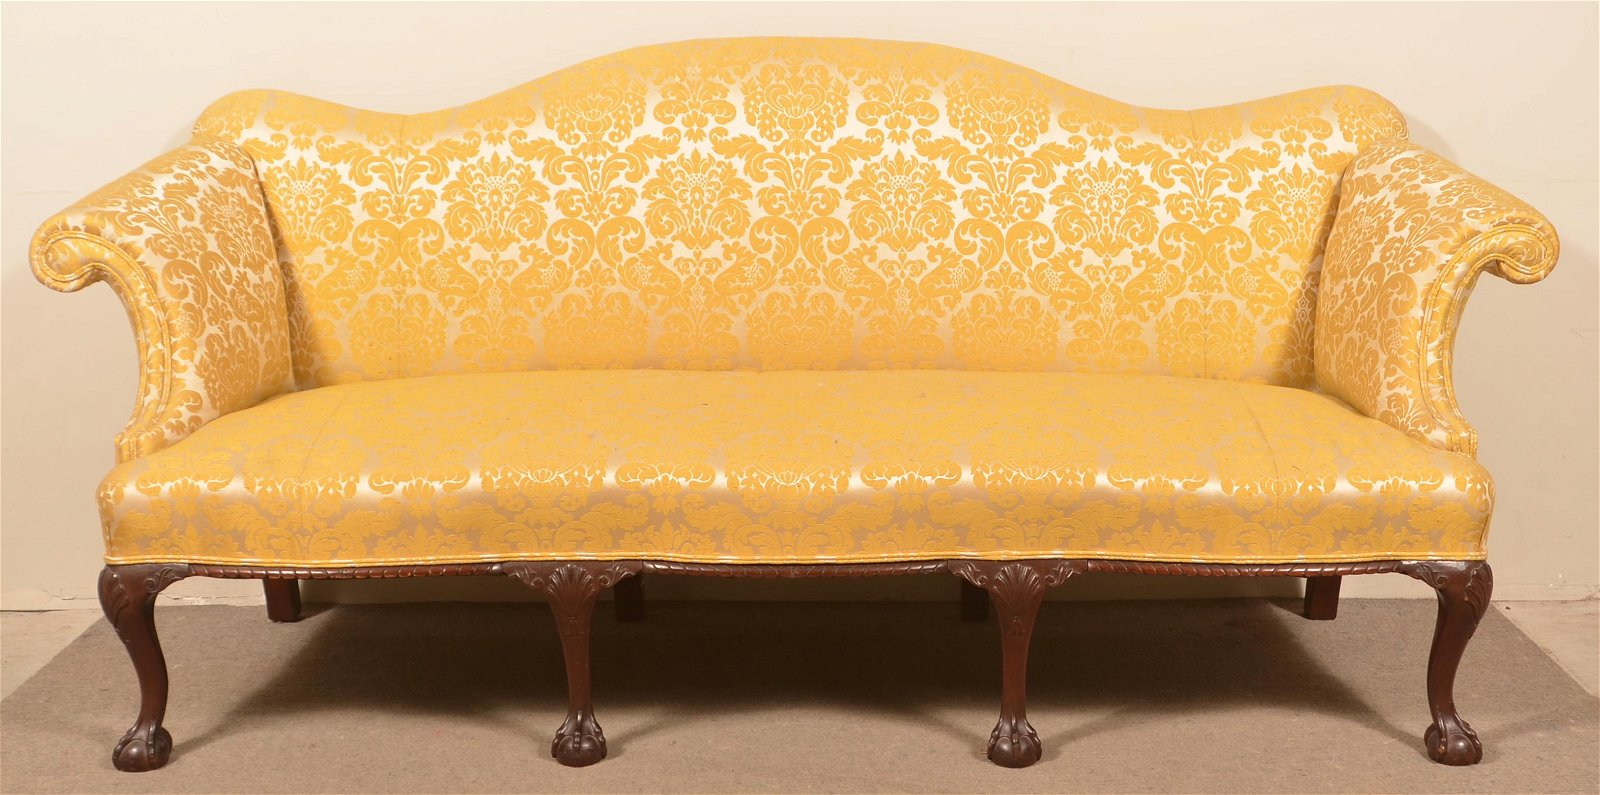 Chippendale Style Camel Back Sofa.